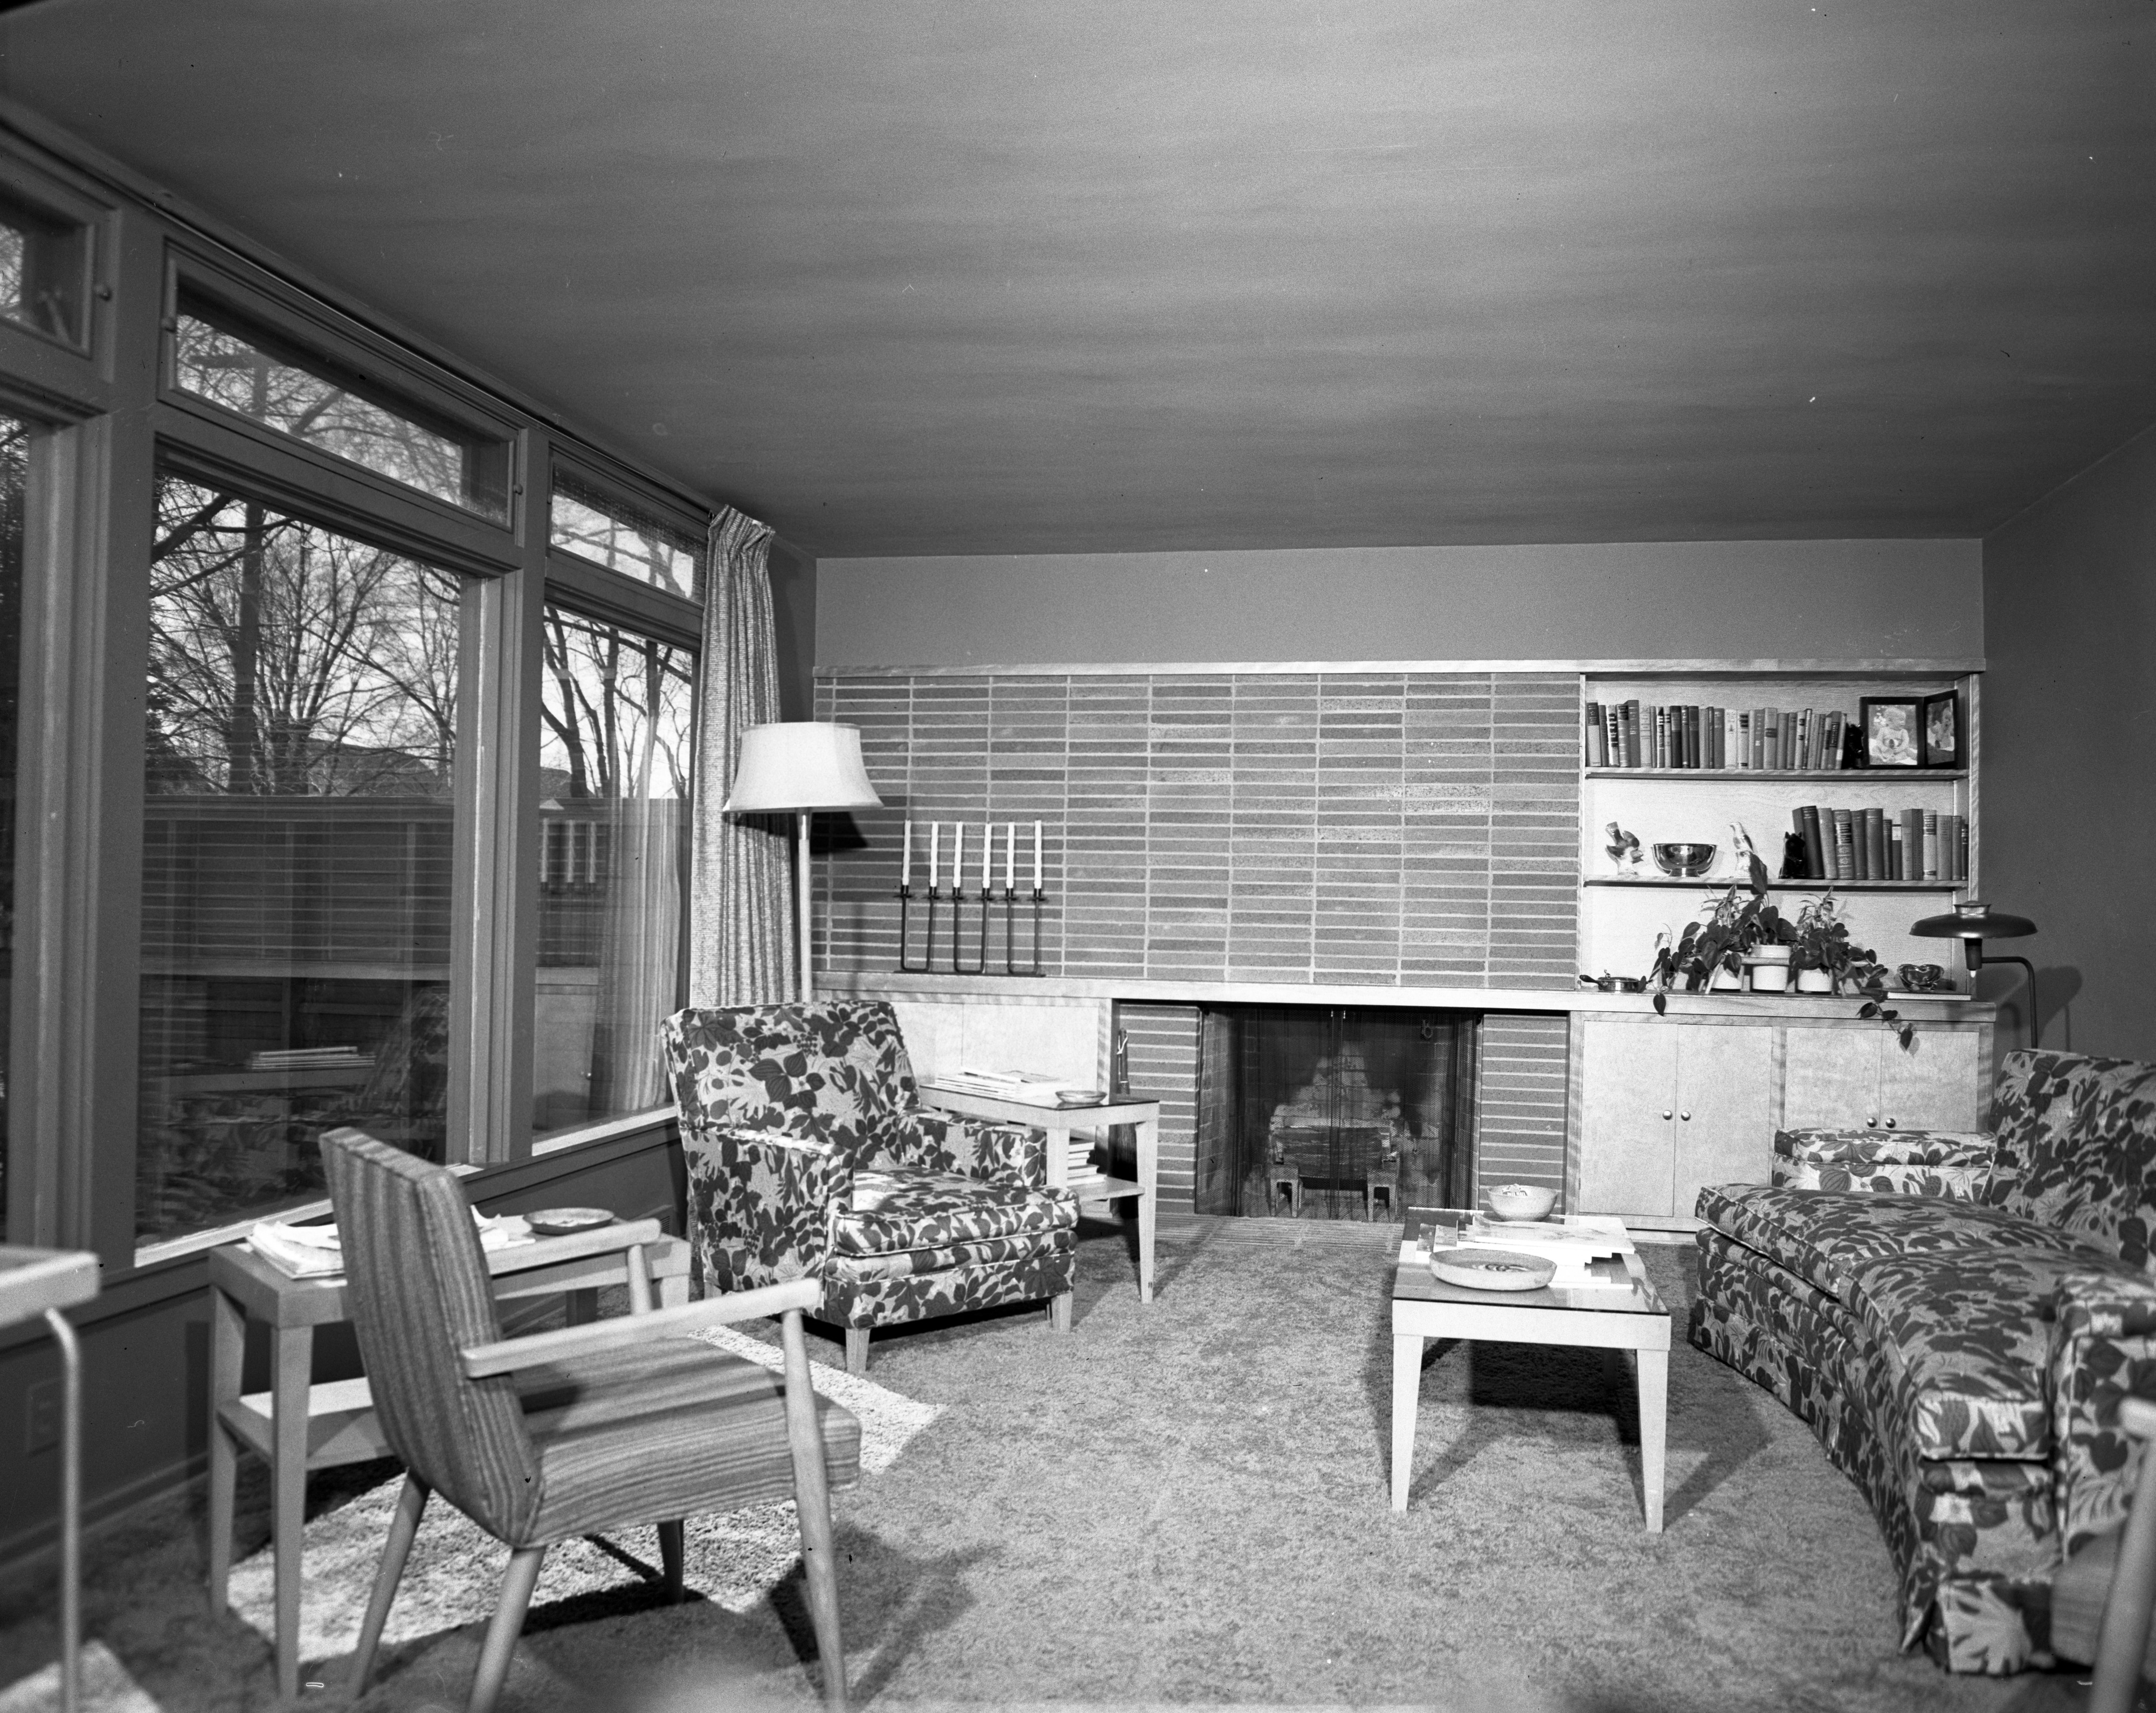 Living Room In Mary & William Dobson Mid-Century Modern Home On Hermitage Rd., April 1951 image